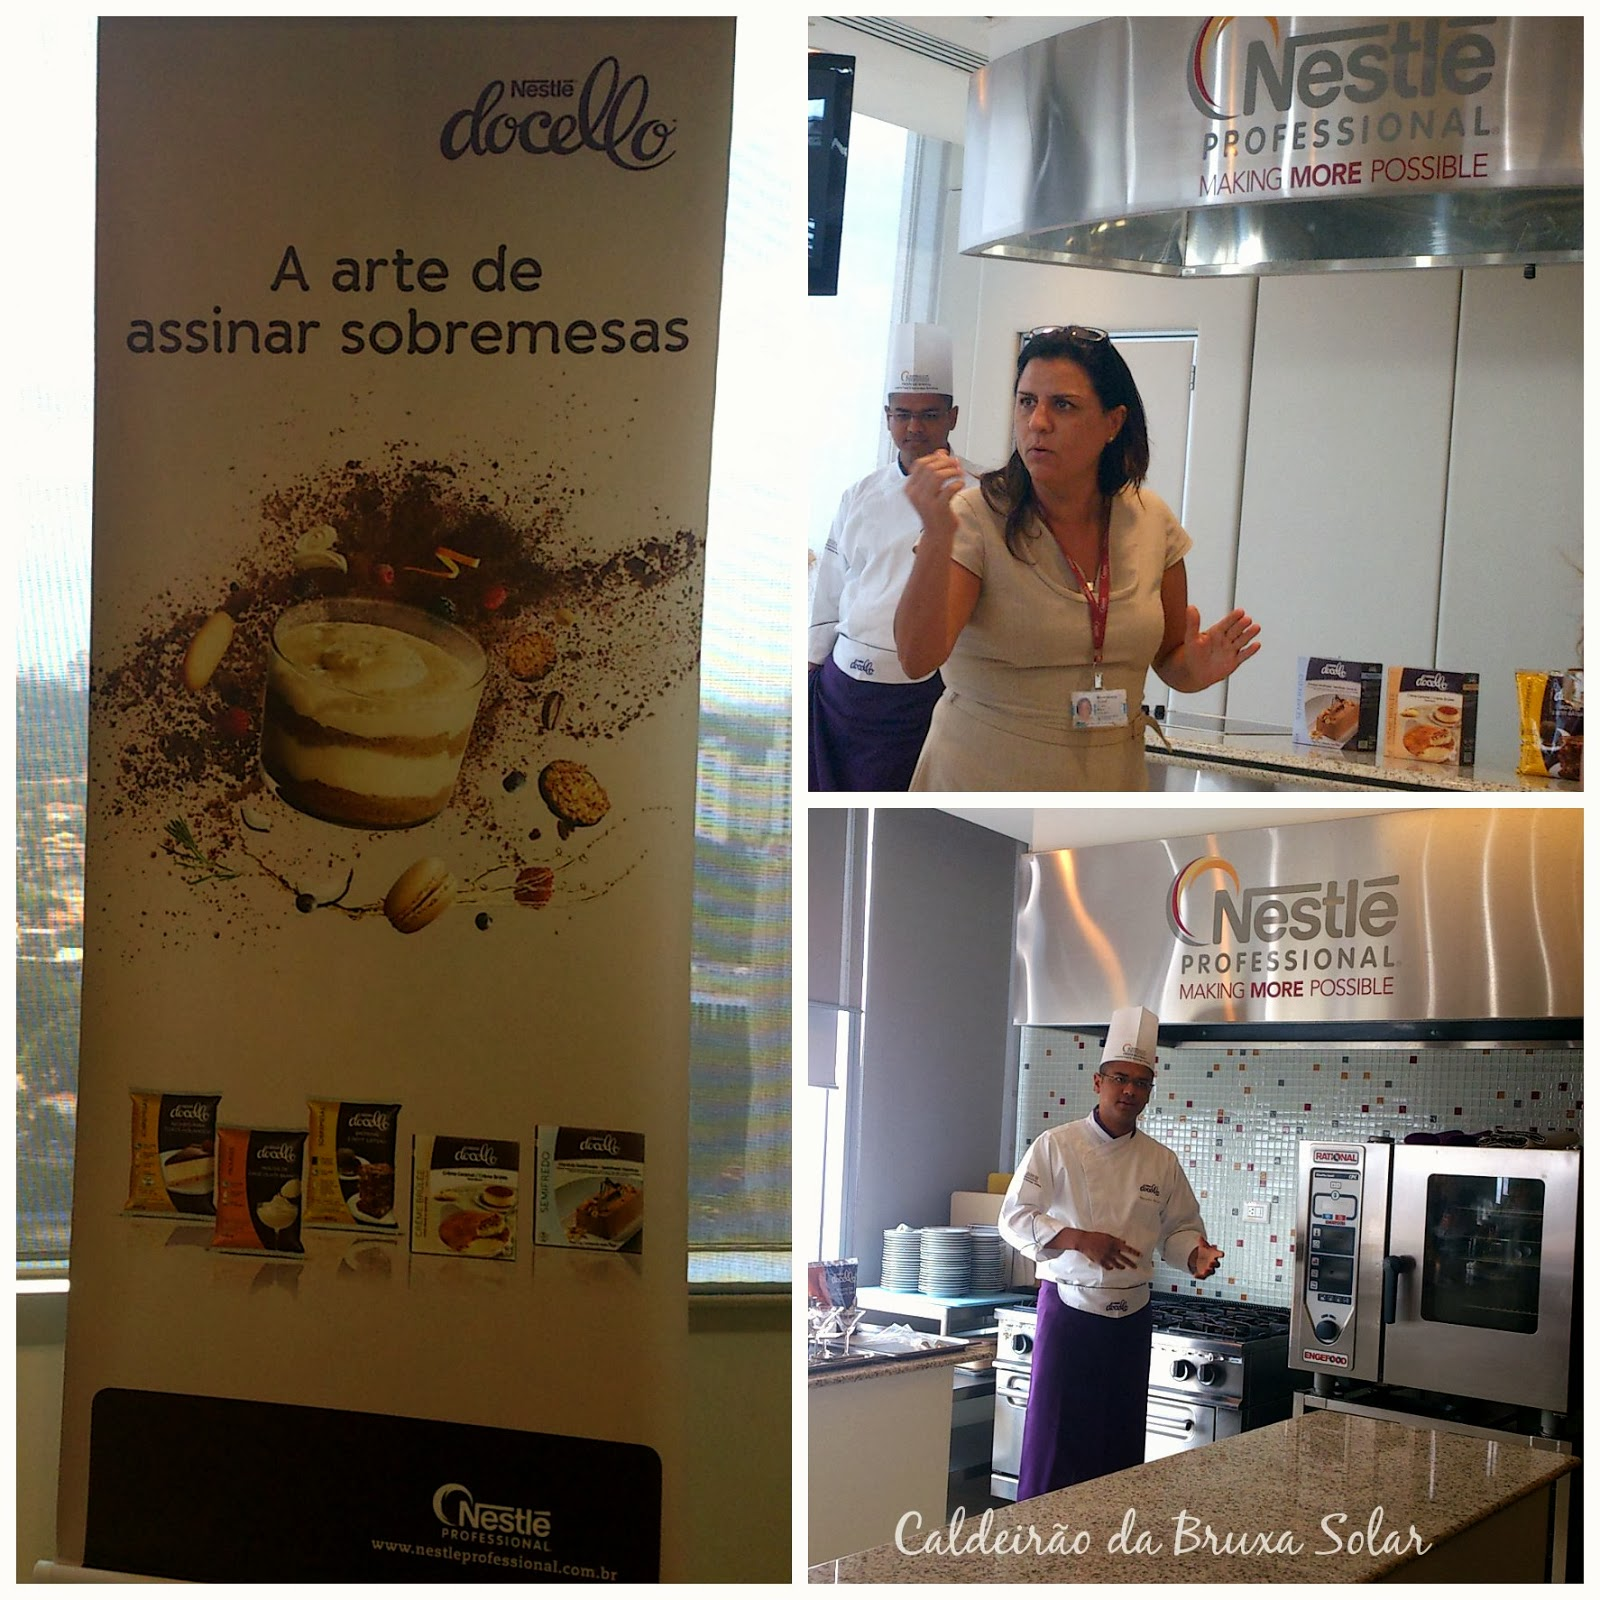 Evento Nestlé Docello